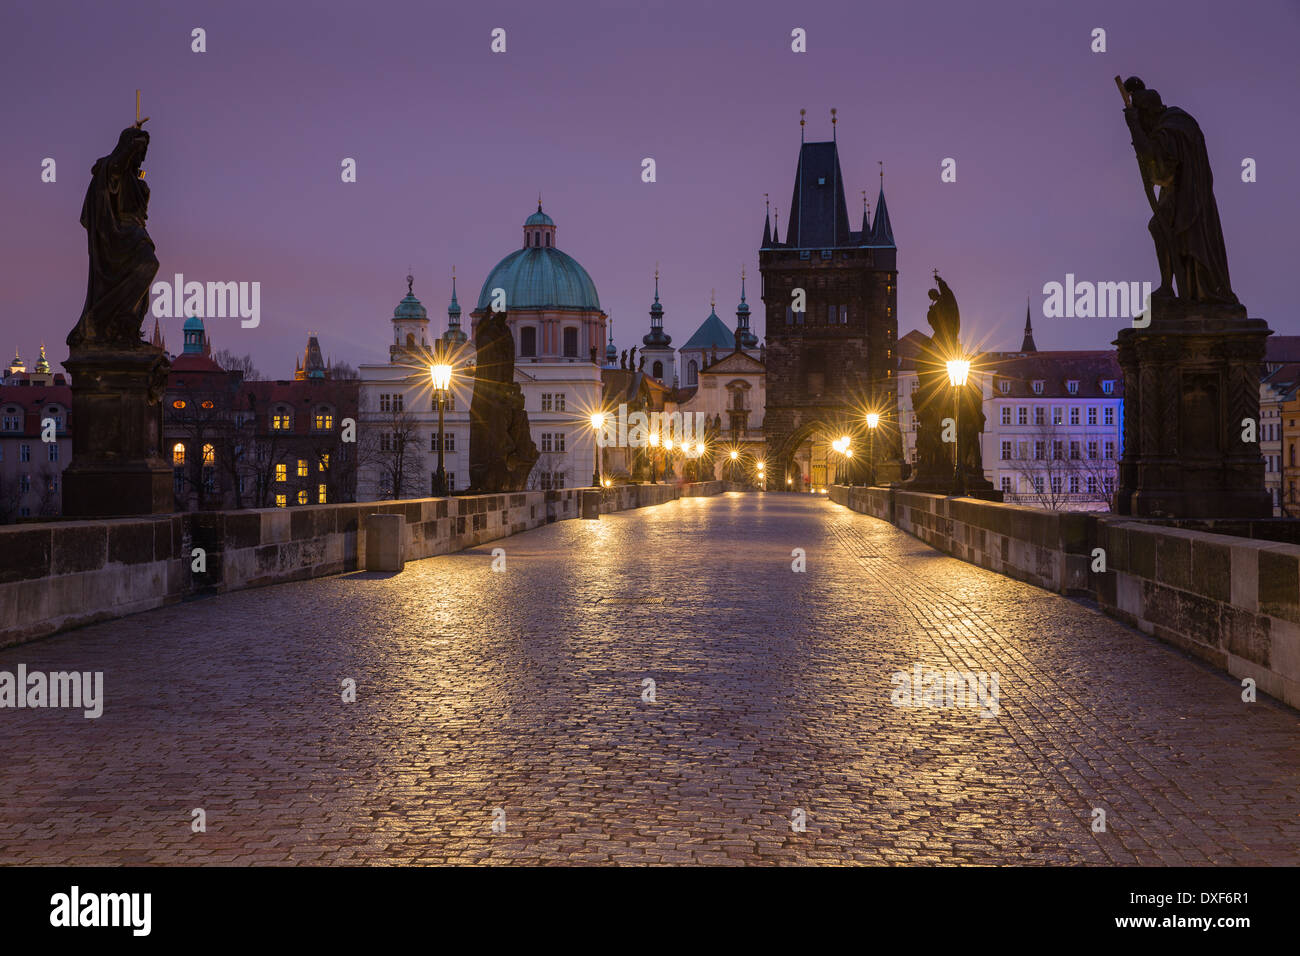 dawn on the Charles Bridge with the towers and spires of the Old Town beyond, Prague, Czech Republic - Stock Image